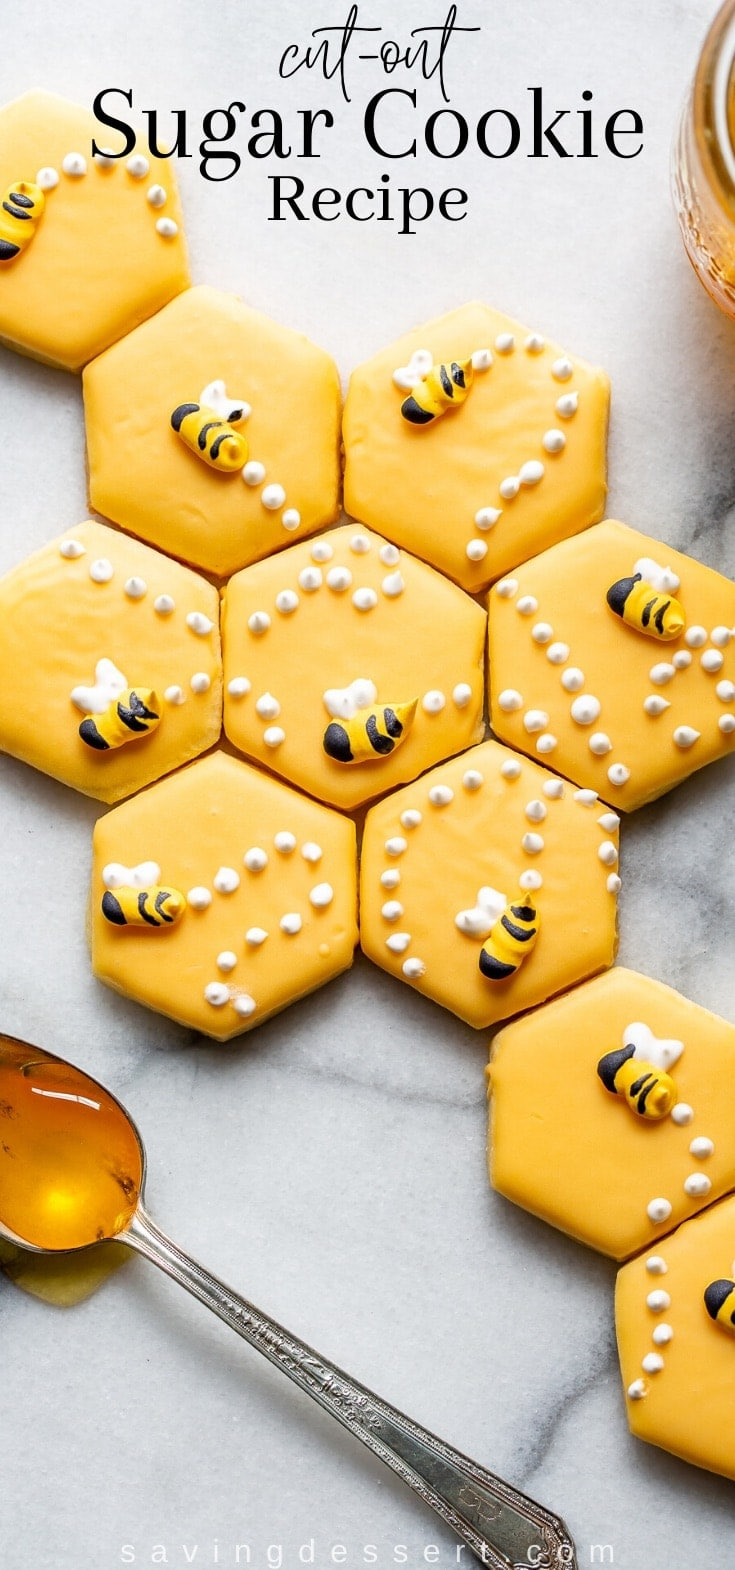 Sugar cookie recipe cut into hexagonal shapes decorated with honey bees made of Royal icing